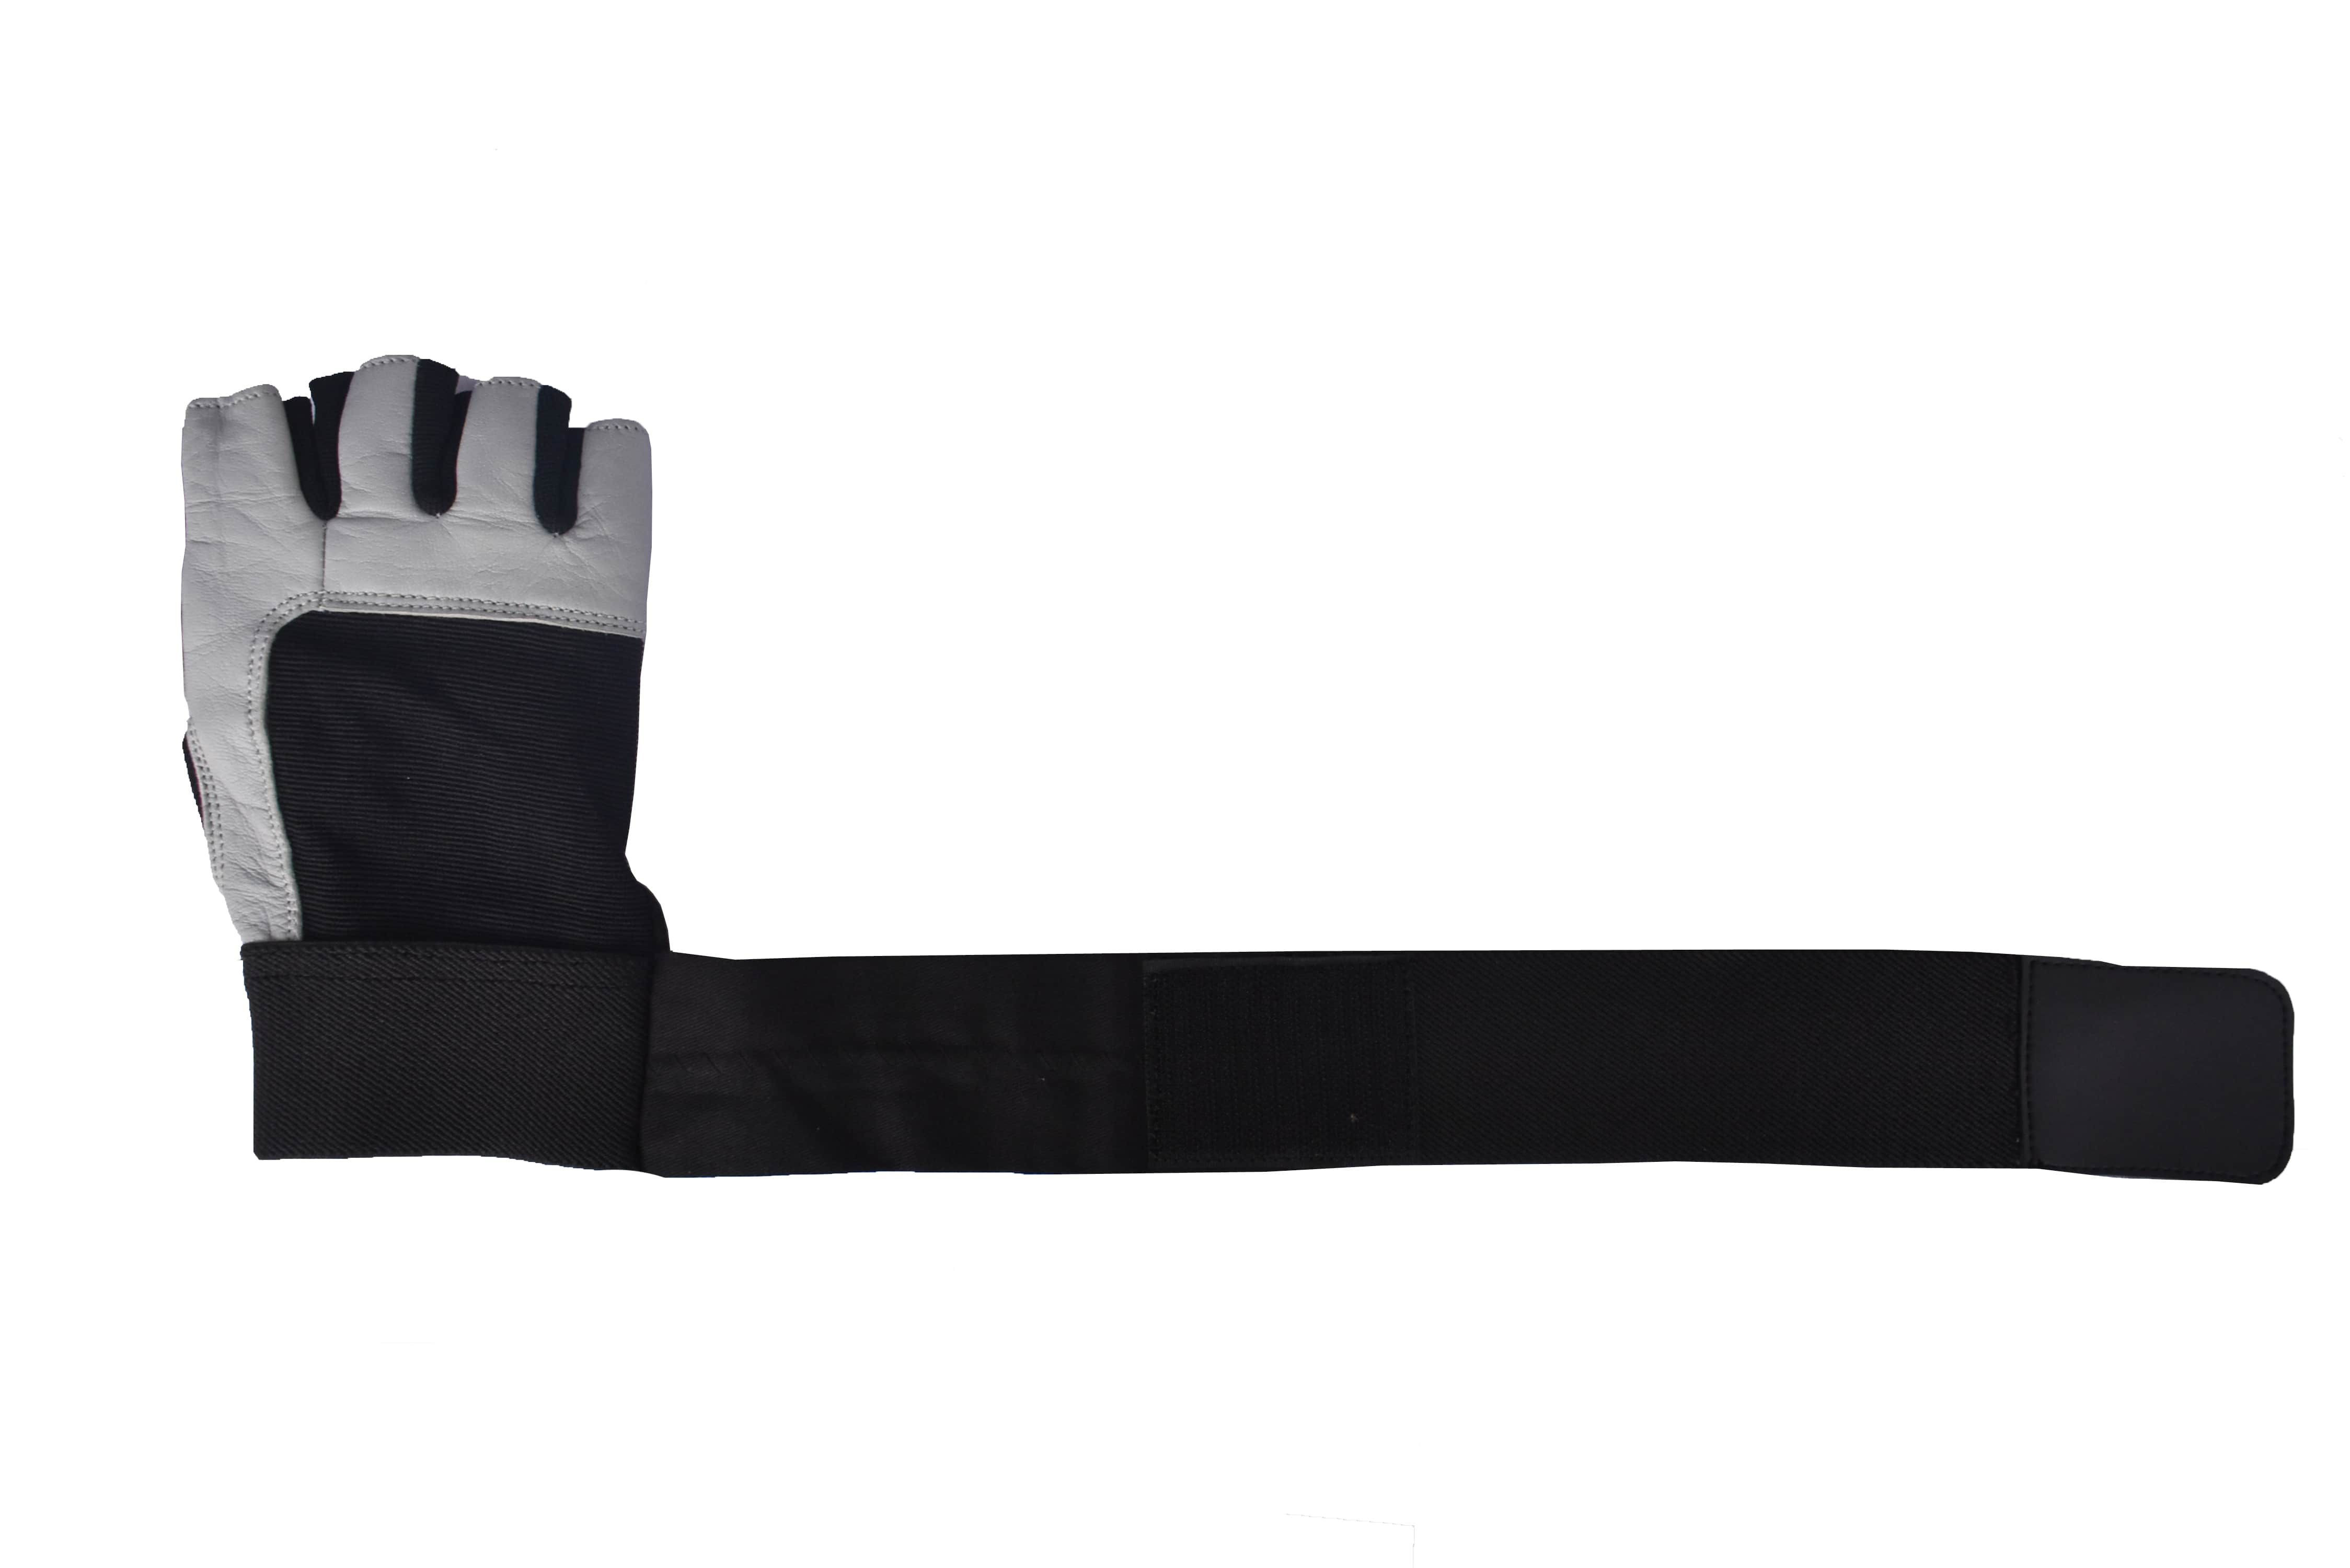 FZS 01A Weight Lifting Gloves